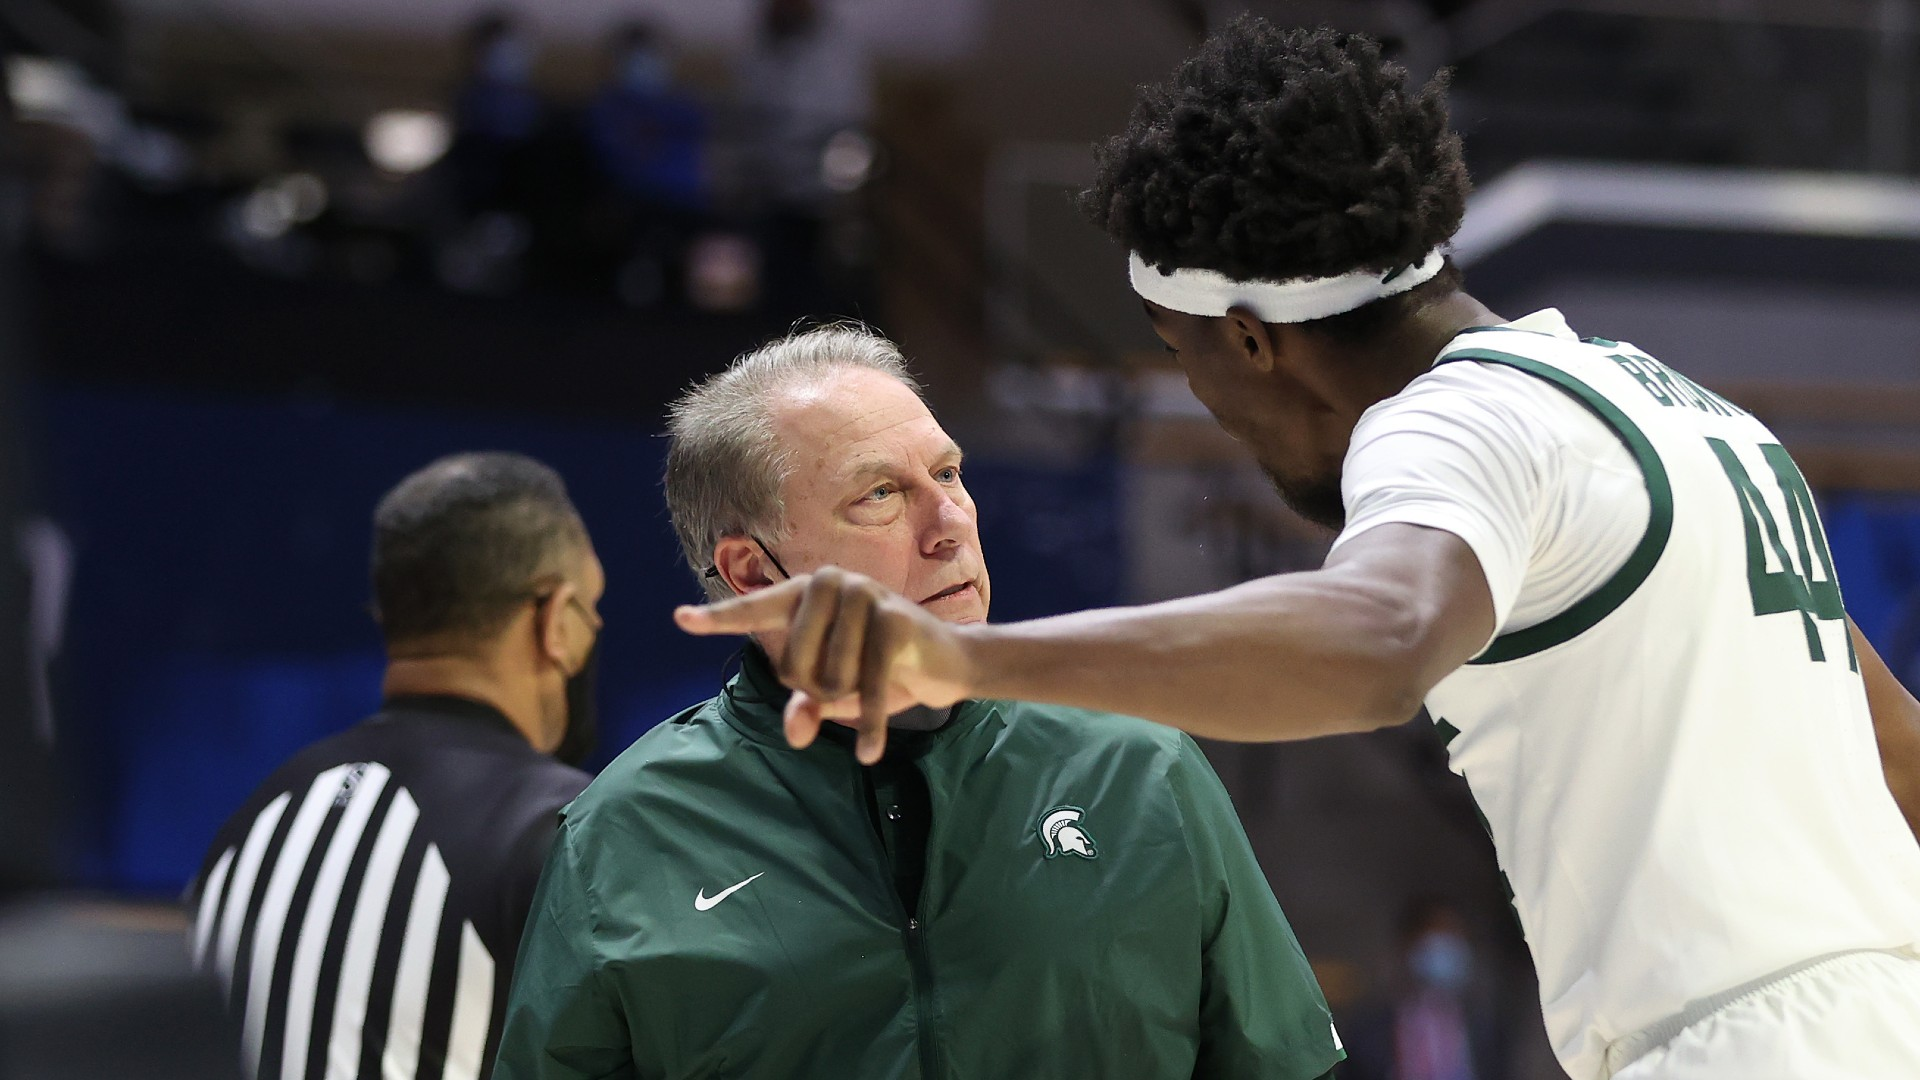 Michigan State's Tom Izzo and Gabe Brown exchanged during the break of the first four games